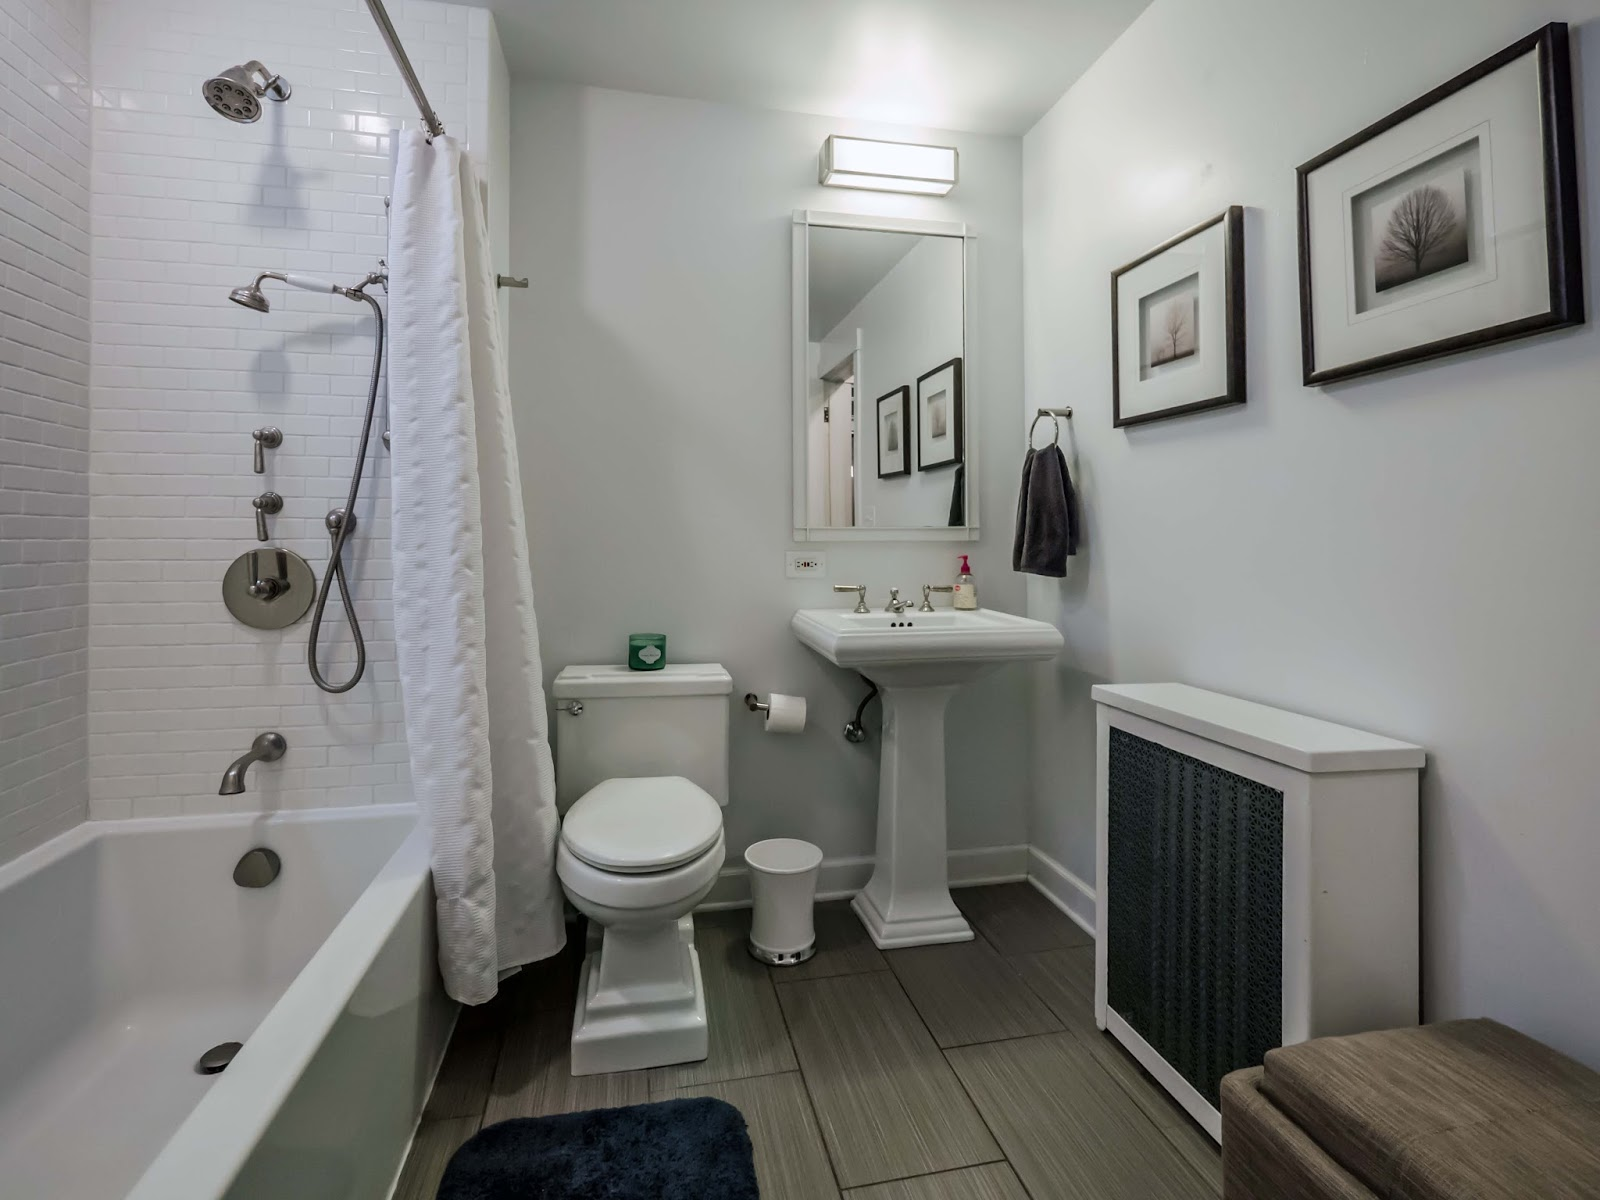 The chicago real estate local new for sale gorgeous east lakeview condo two bedrooms den Bathroom light fixtures chicago